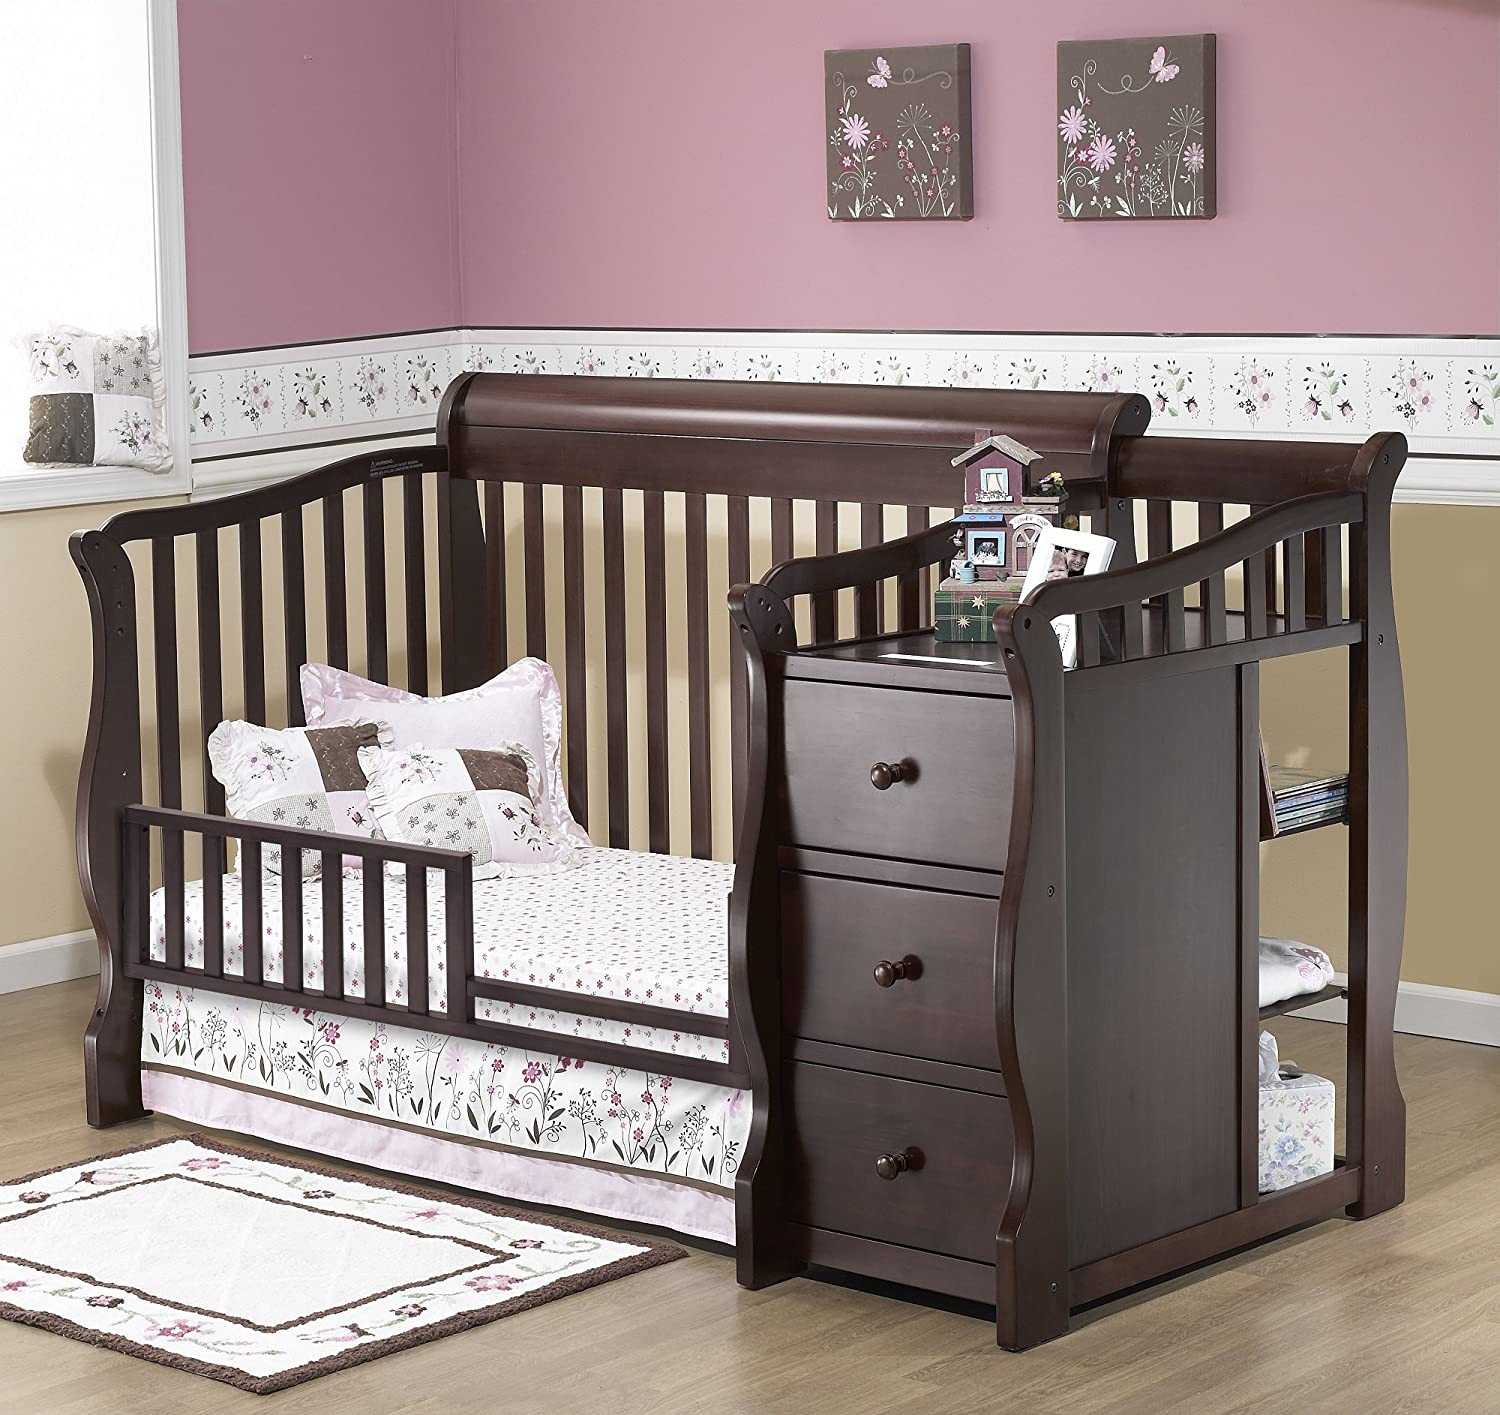 Amazoncom Sorelle Tuscany 4in1 Convertible Crib and Changer Set